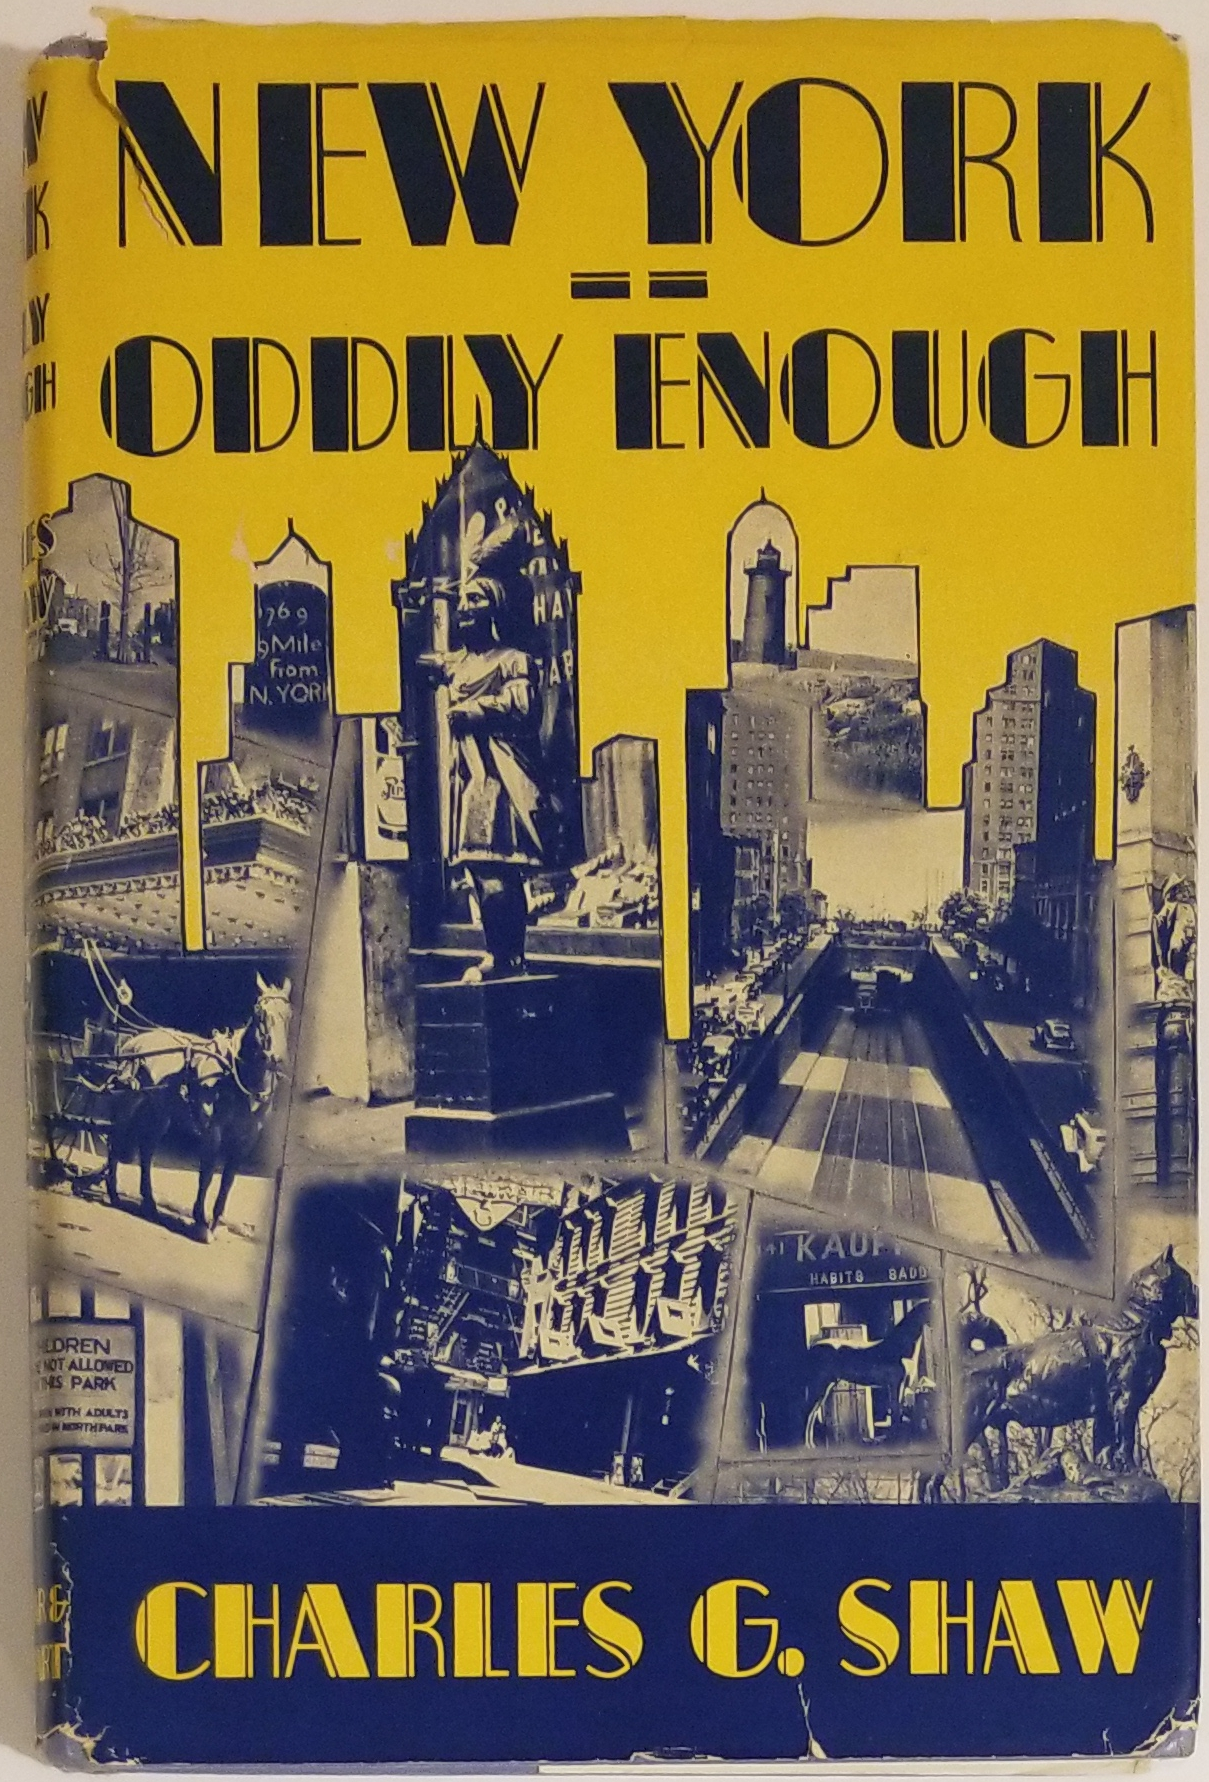 NEW YORK -- ODDLY ENOUGH. Charles G. Shaw.